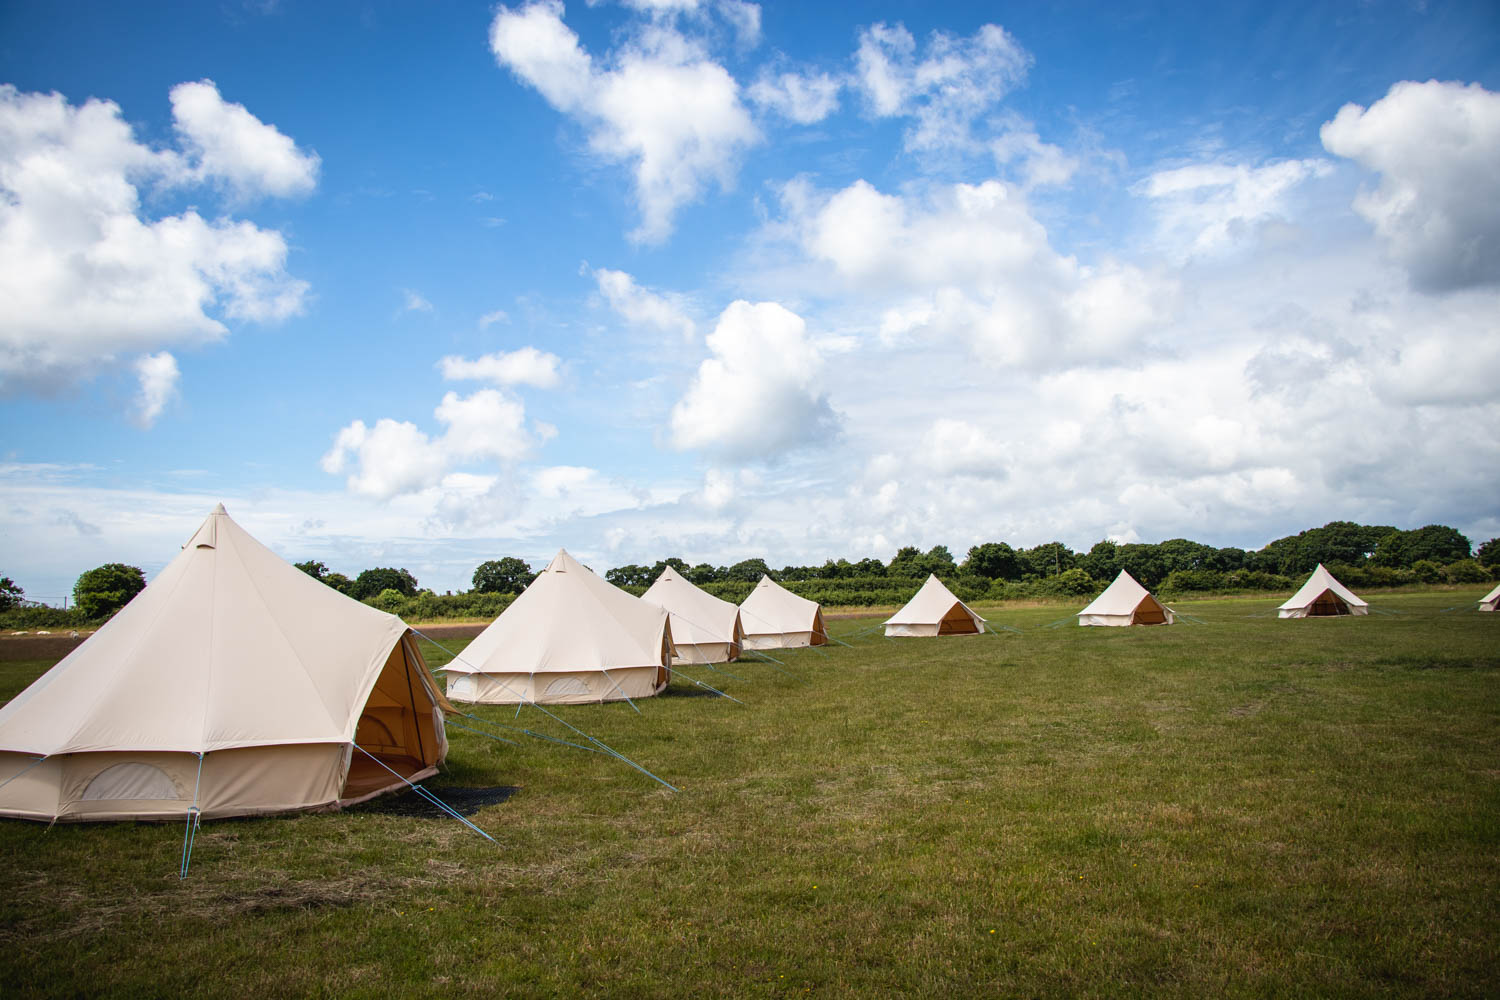 Incorporate camping into your youth activities residential trip.